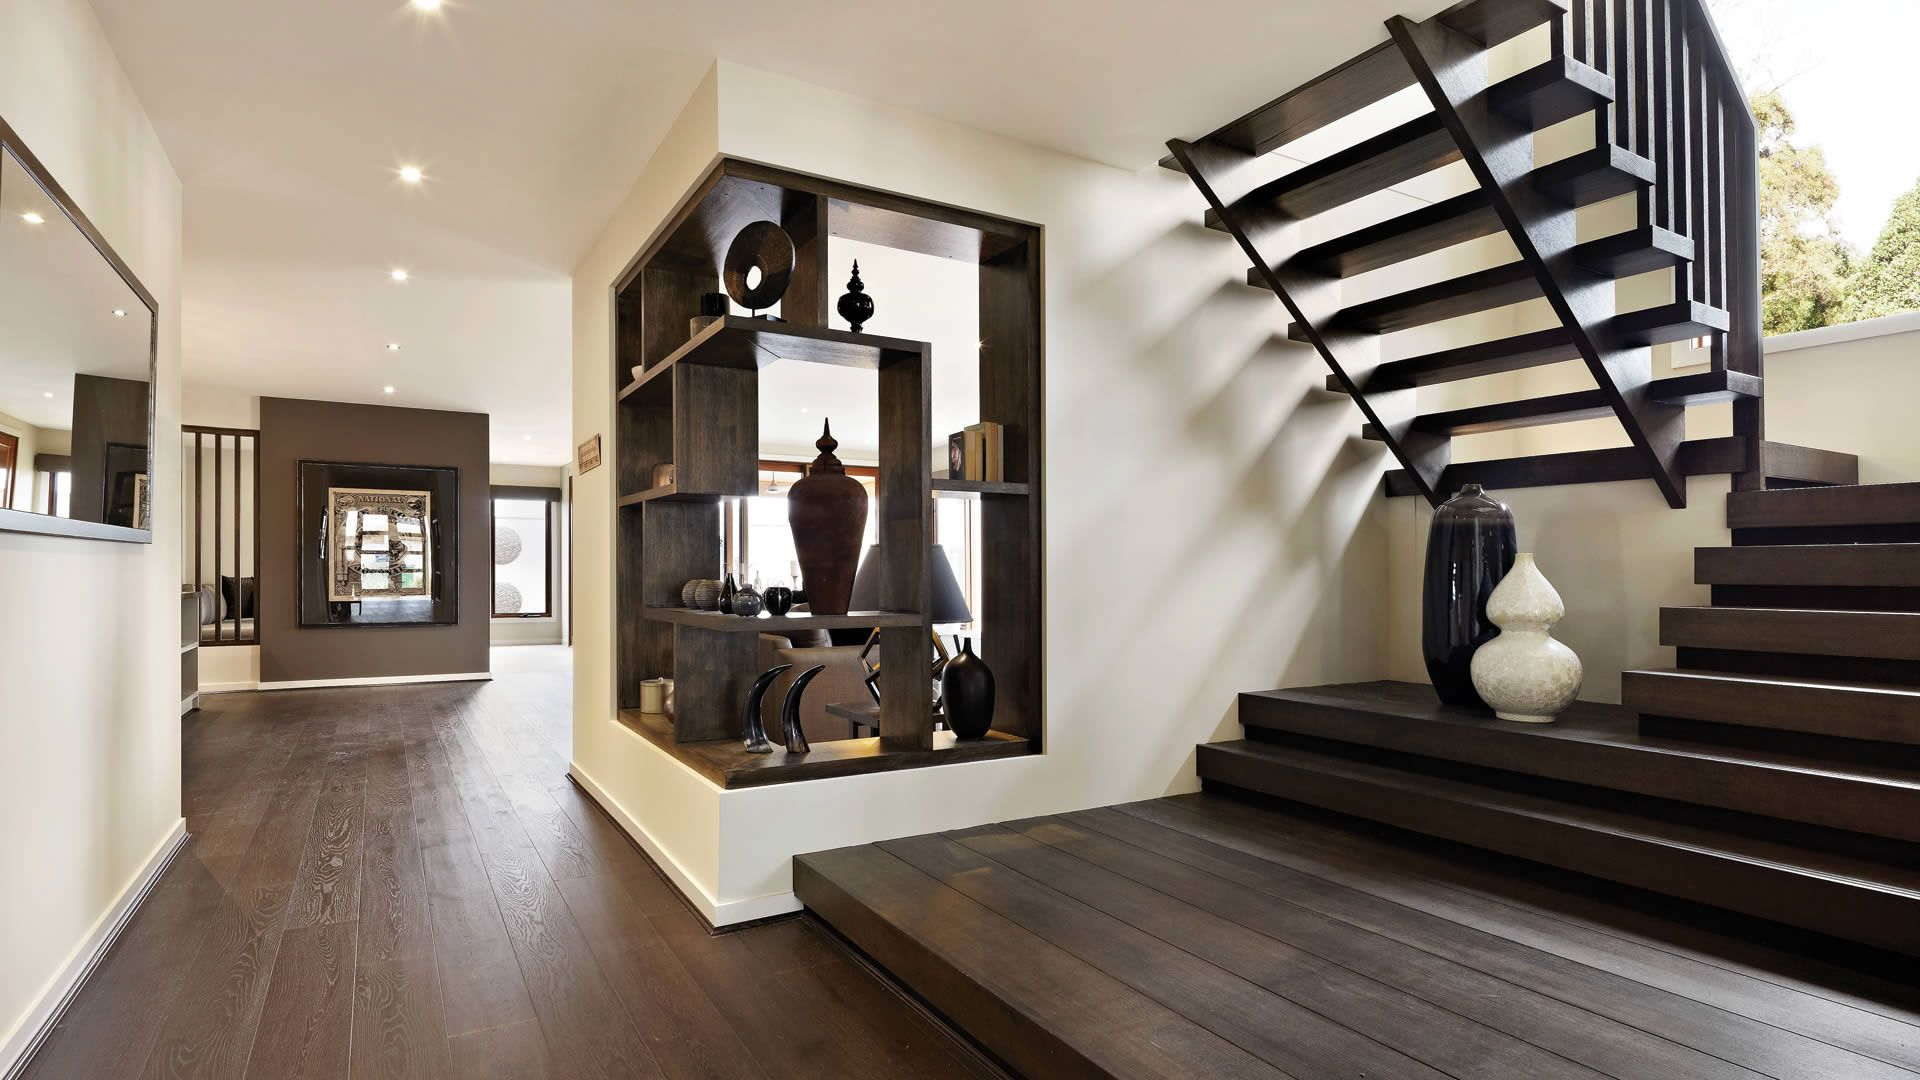 House Design Wooden Staircase Ideas Plus White Black Ceramic Vase With Cornet Shelves Idea And Large Mirror In Modern Interior Designs The